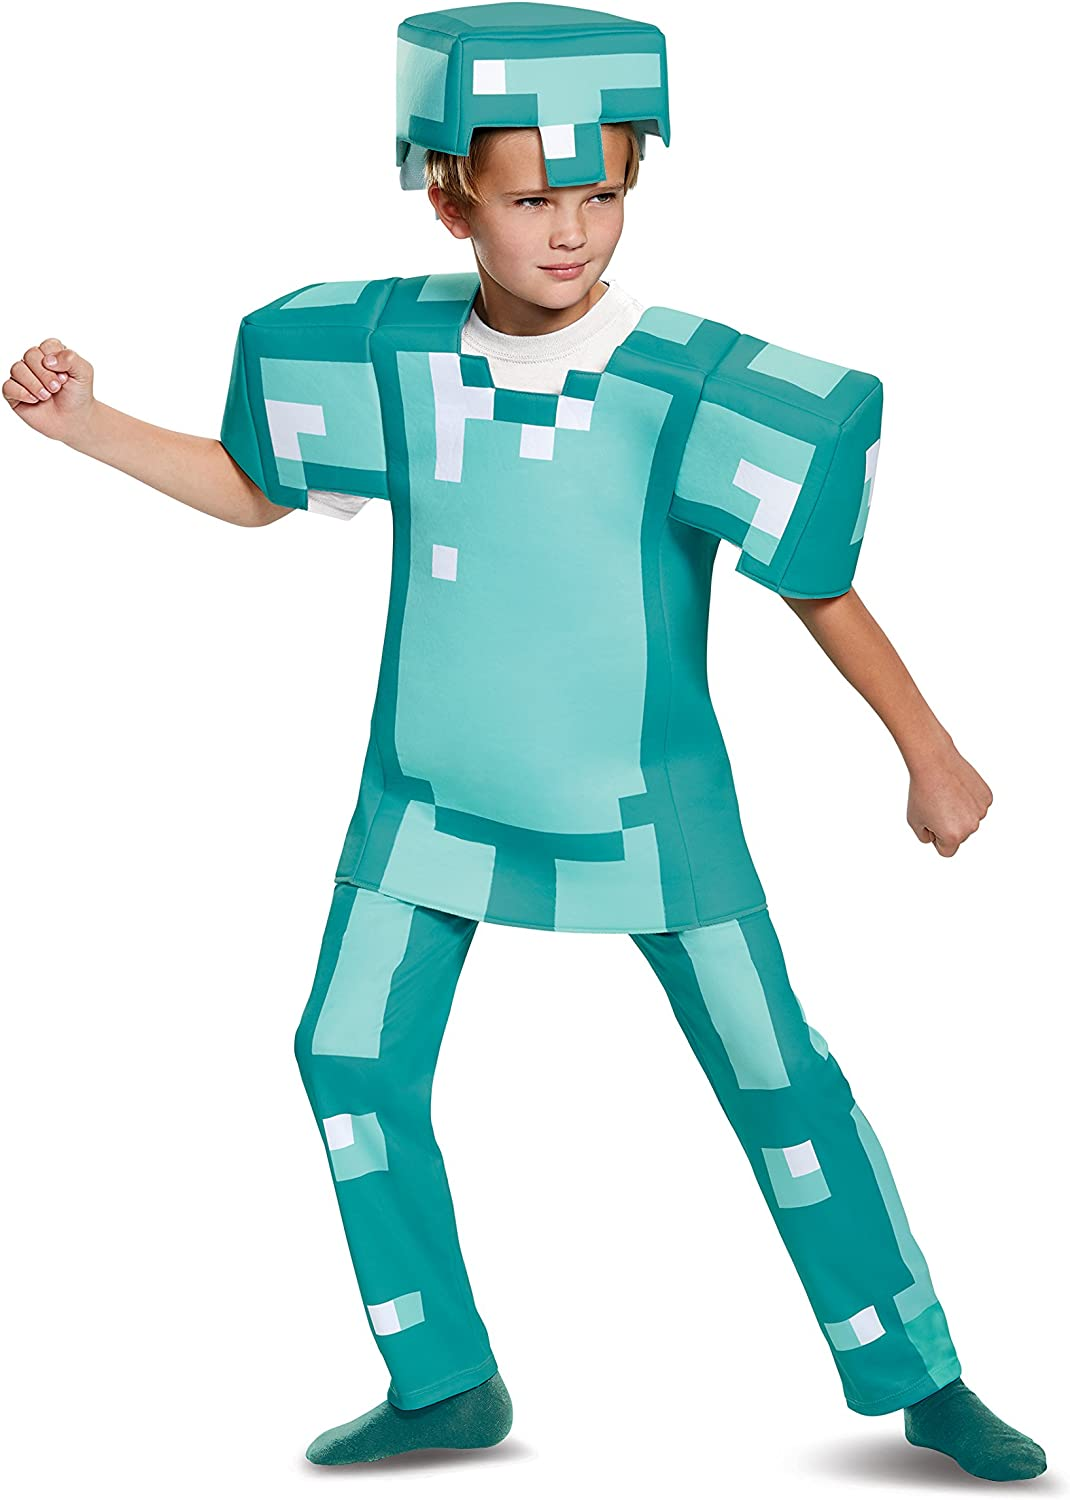 Armor Deluxe Minecraft Costume, Blue, Large (12-12)